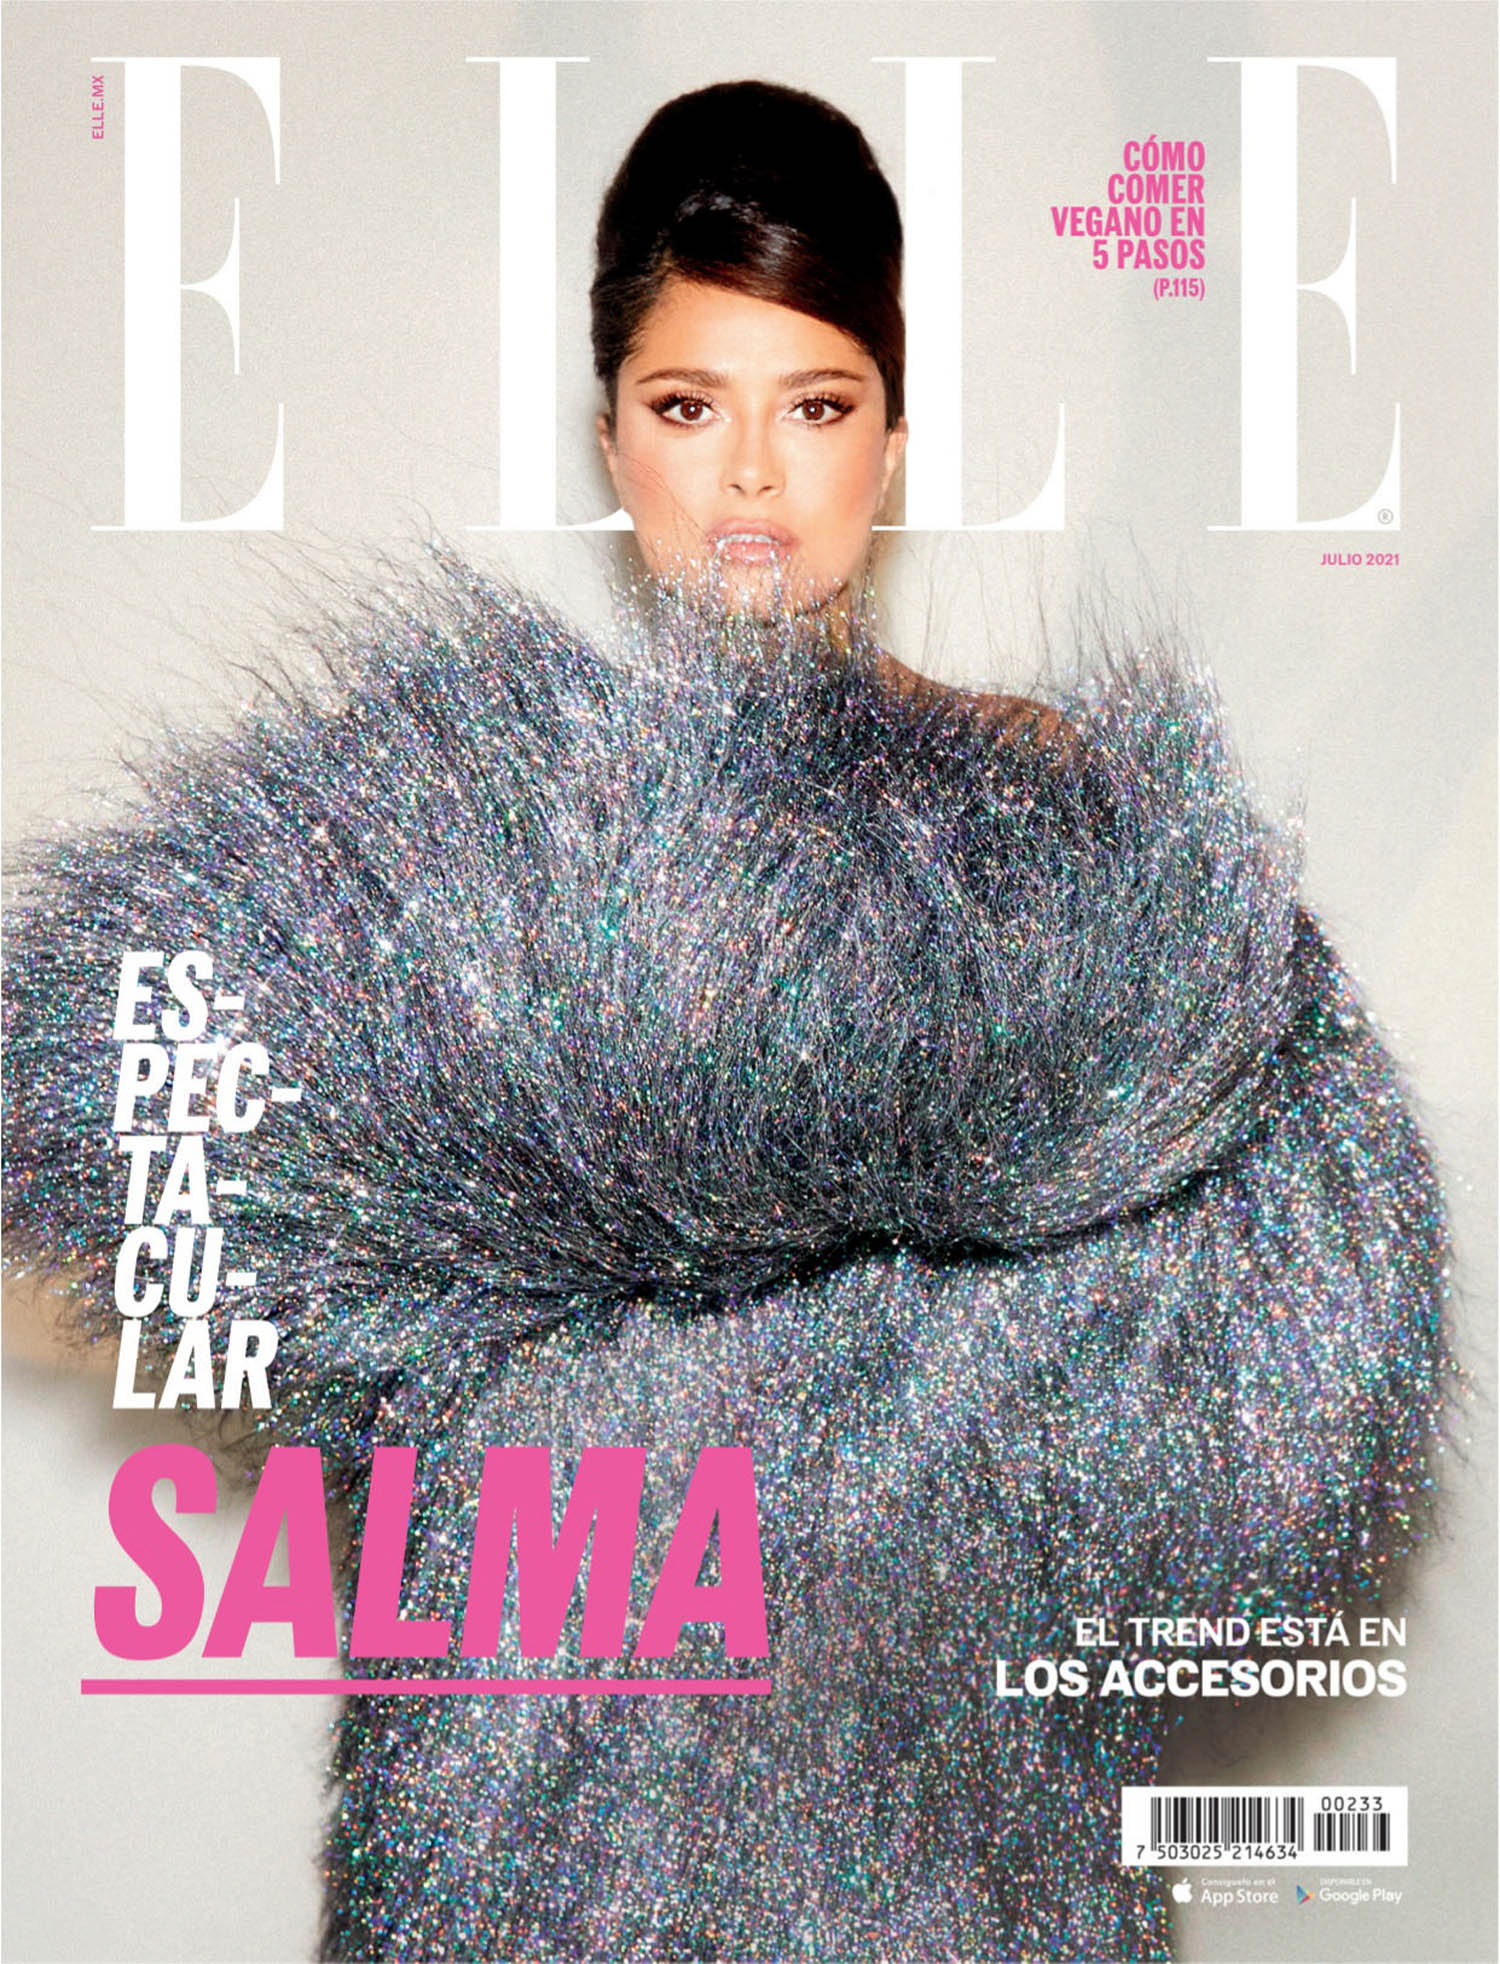 Salma Hayek covers Elle Mexico July 2021 by Zoe McConnell